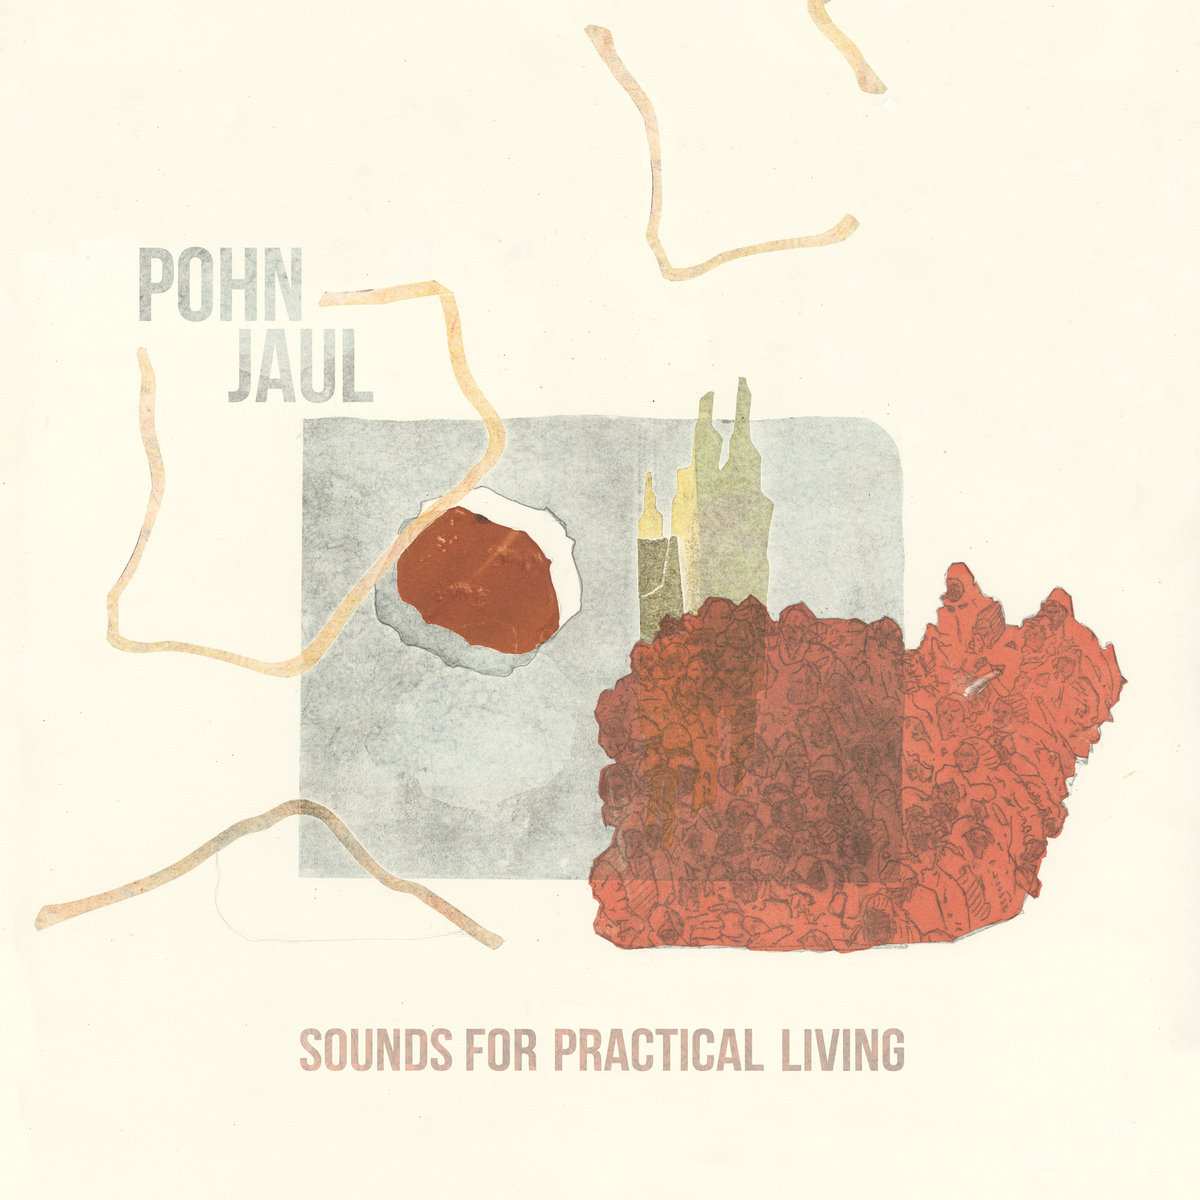 POHNJAUL – Sounds For Practical Living